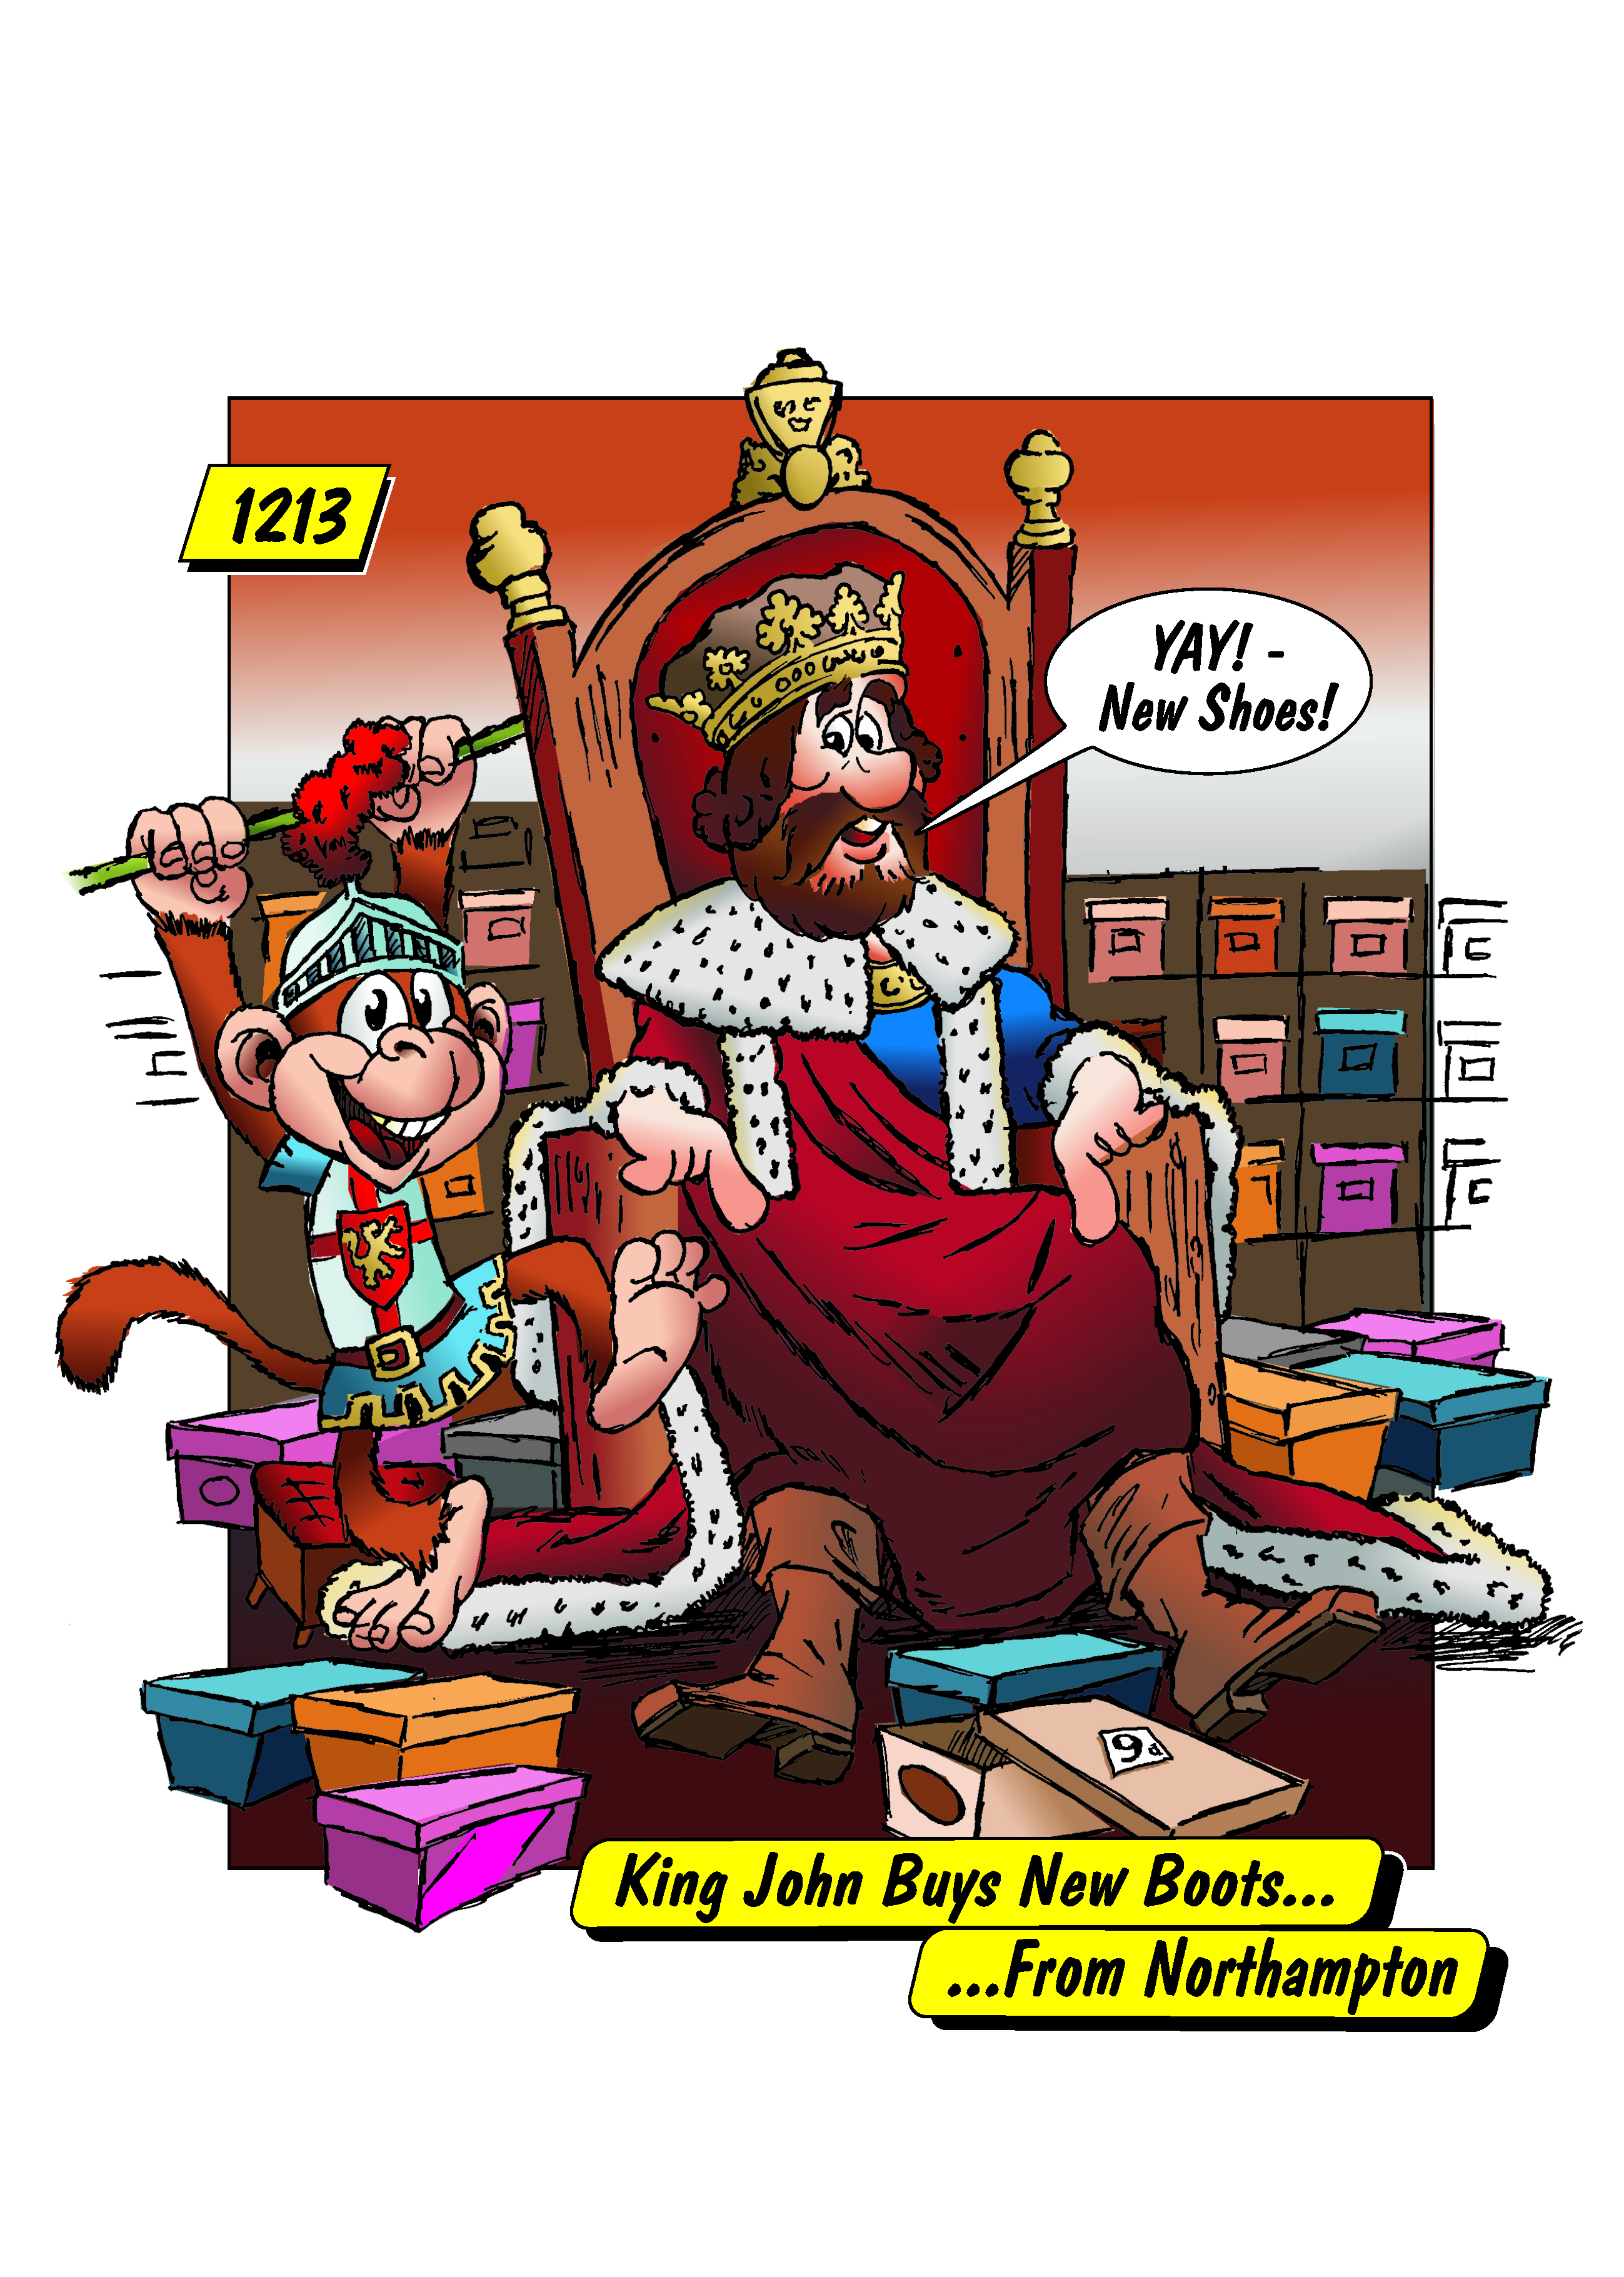 King John buys new boots from Northampton